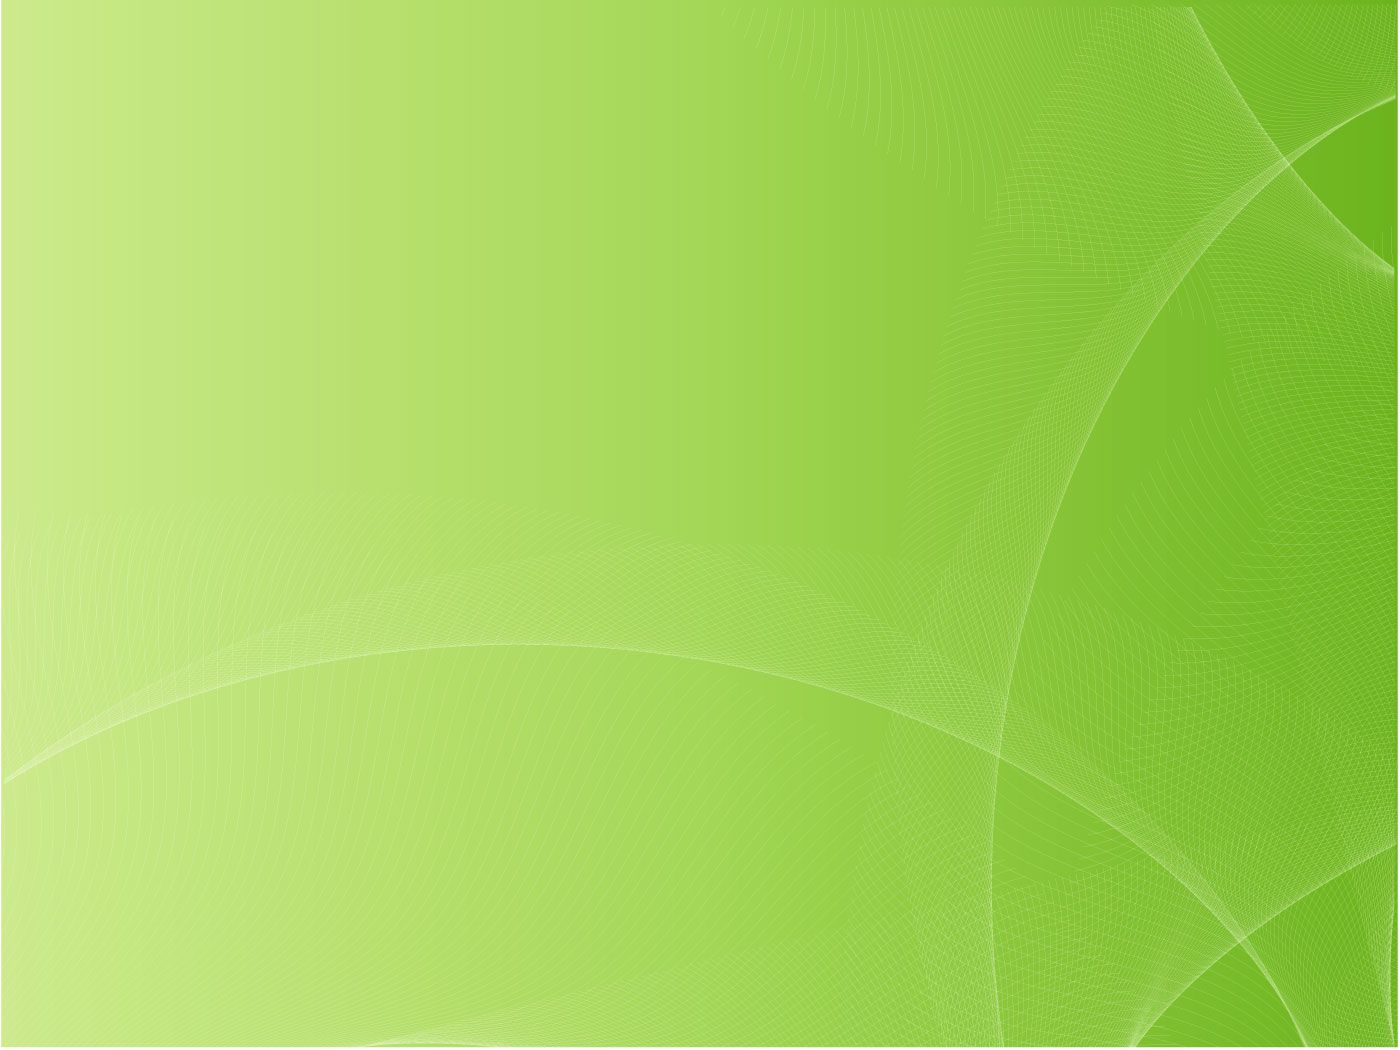 Green Abstract Vector Background Lines White Swooshes